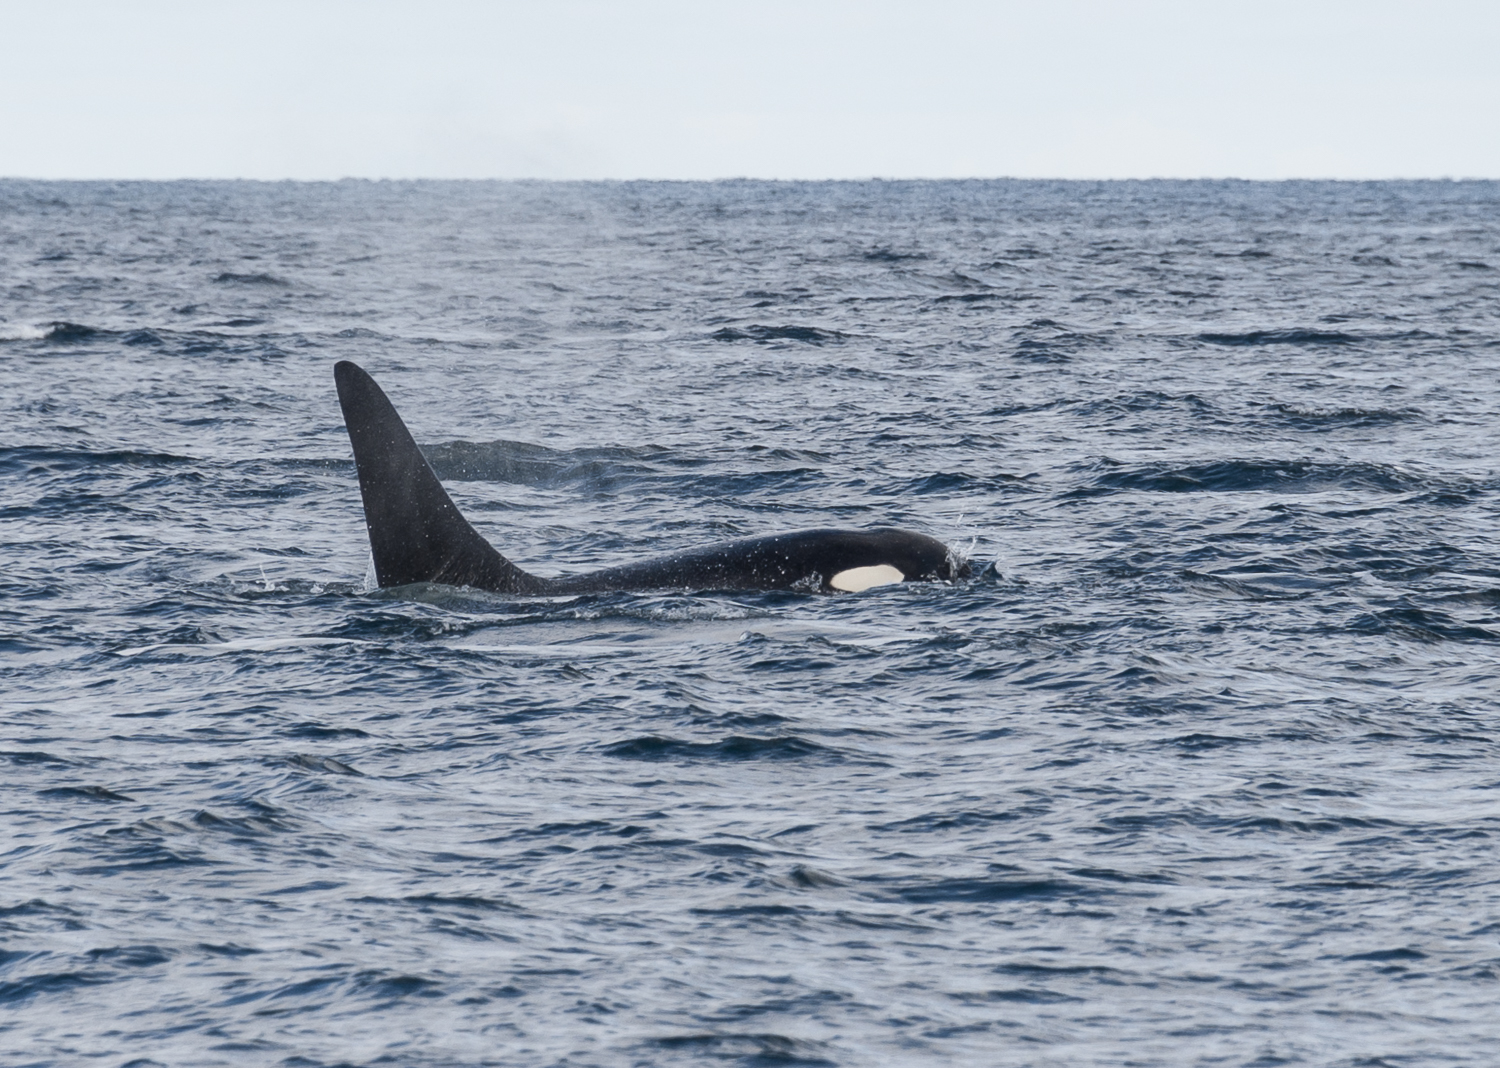 Orca parallels our course